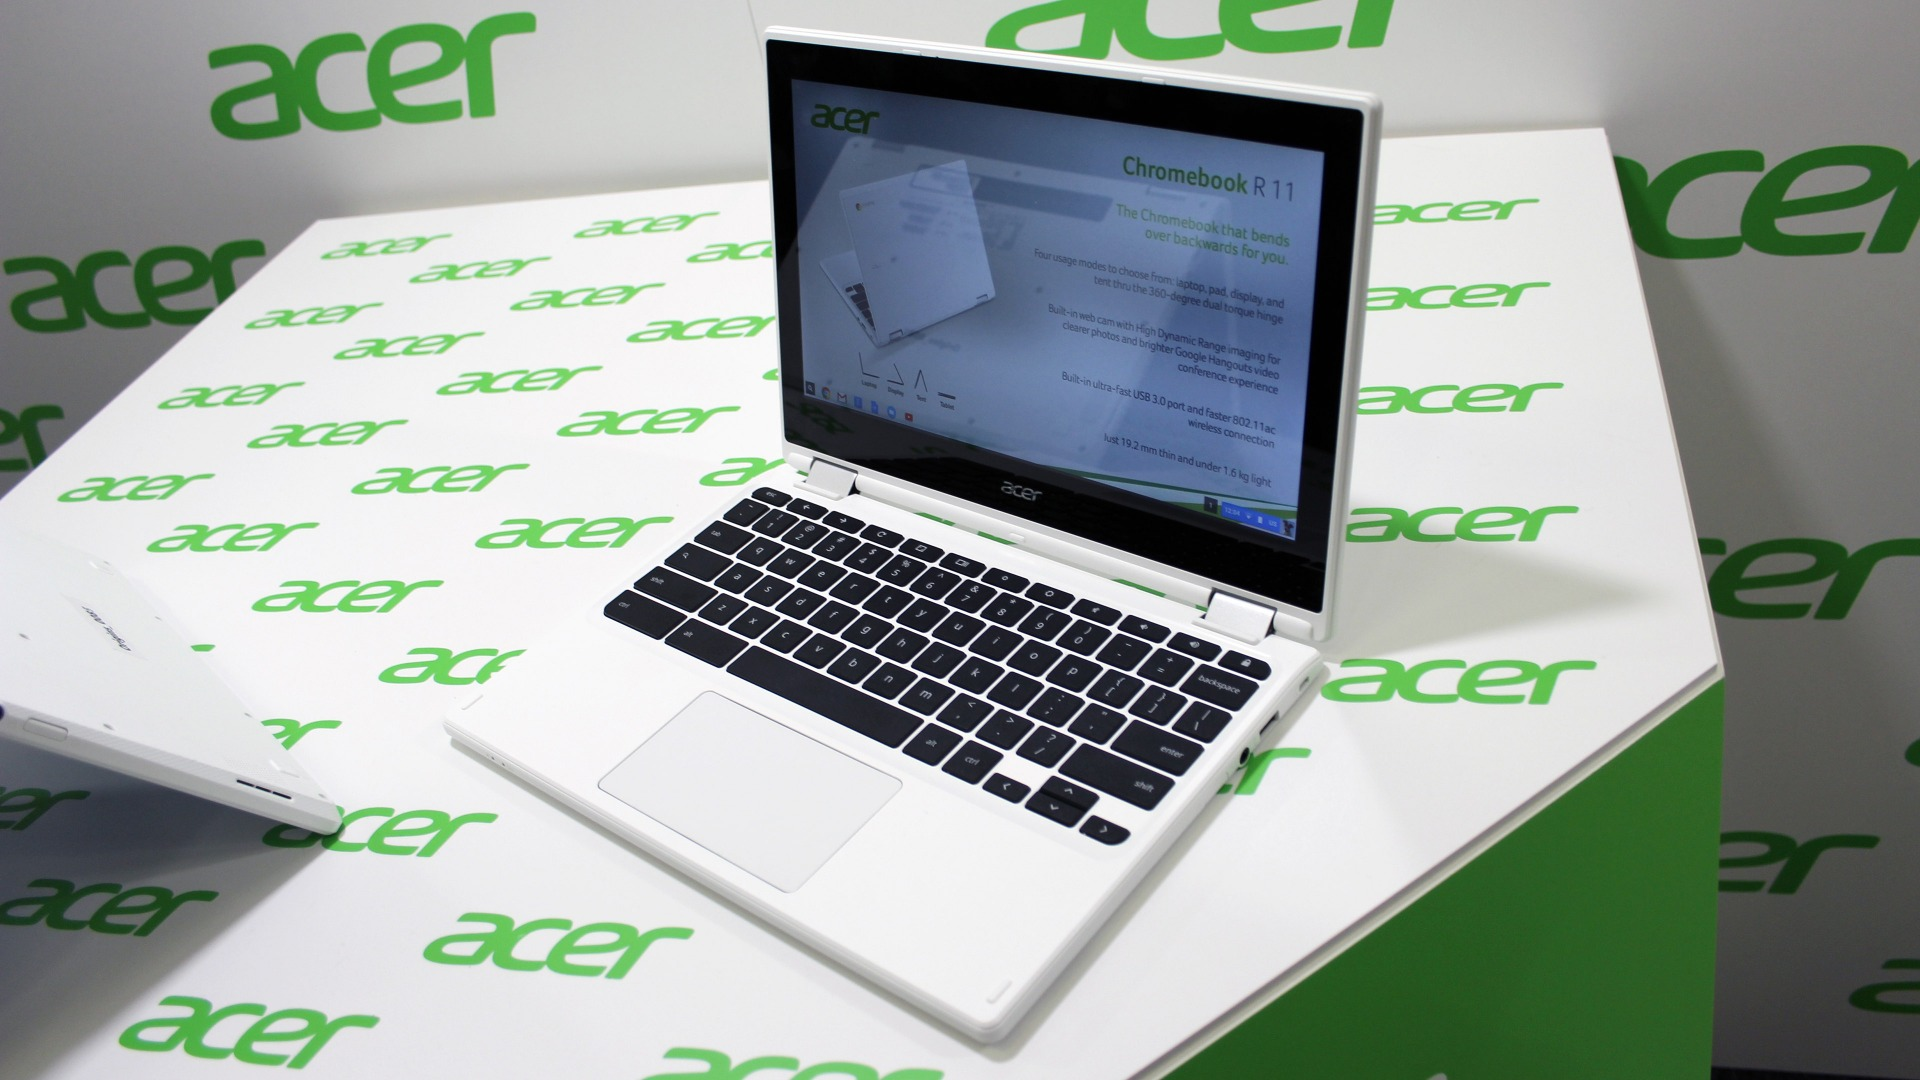 Hands-on: Acer's new Chromebook has a Yoga-like 360-degree hinge